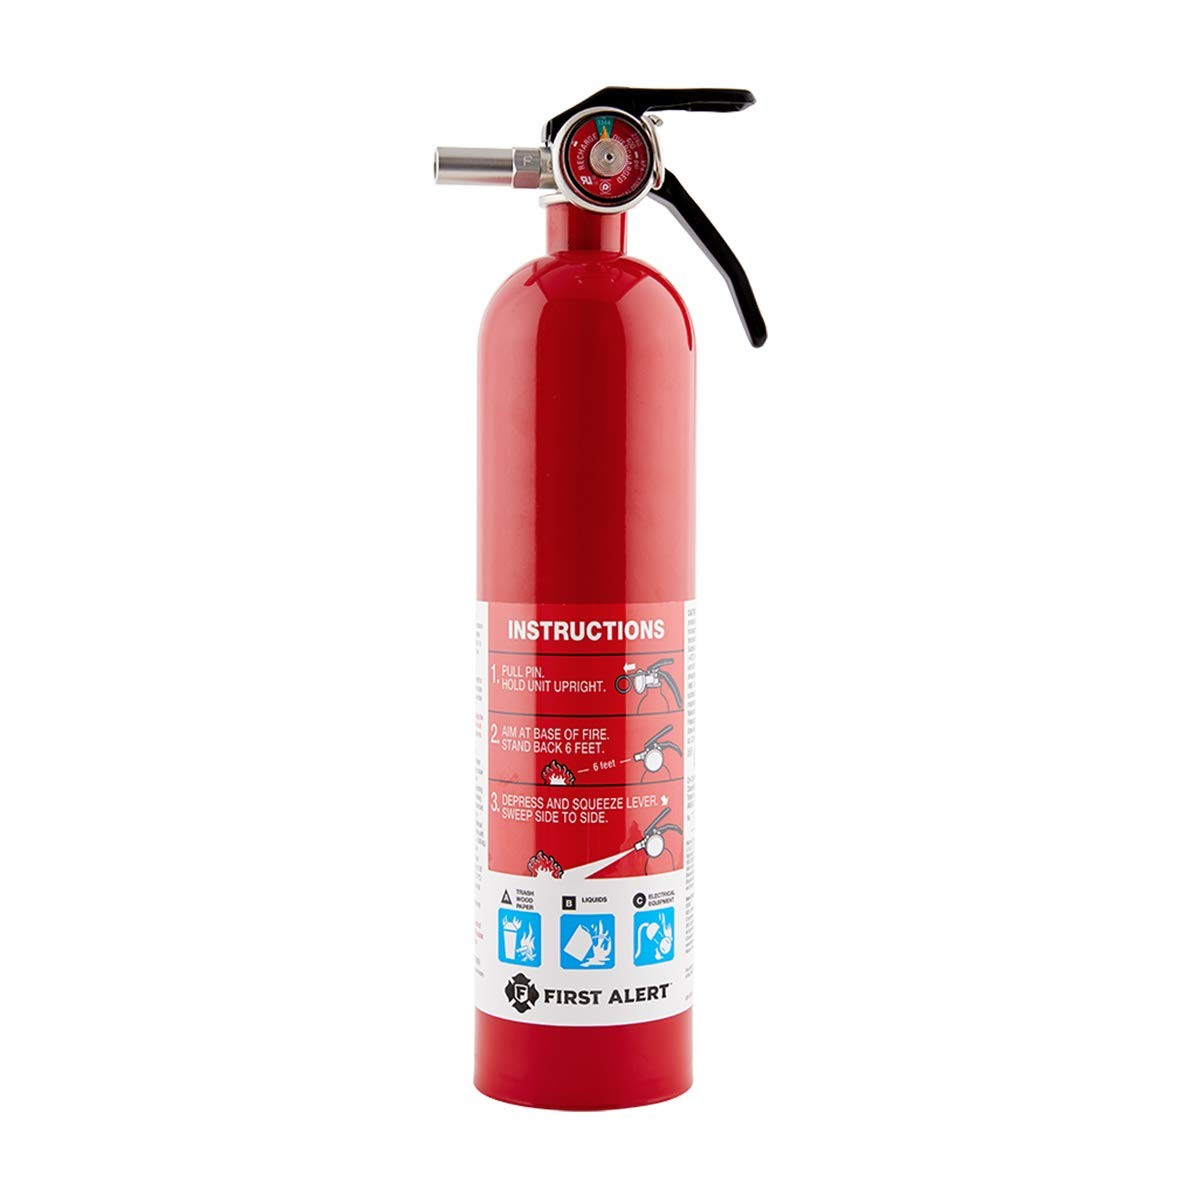 Best Extinguisher For Home Use